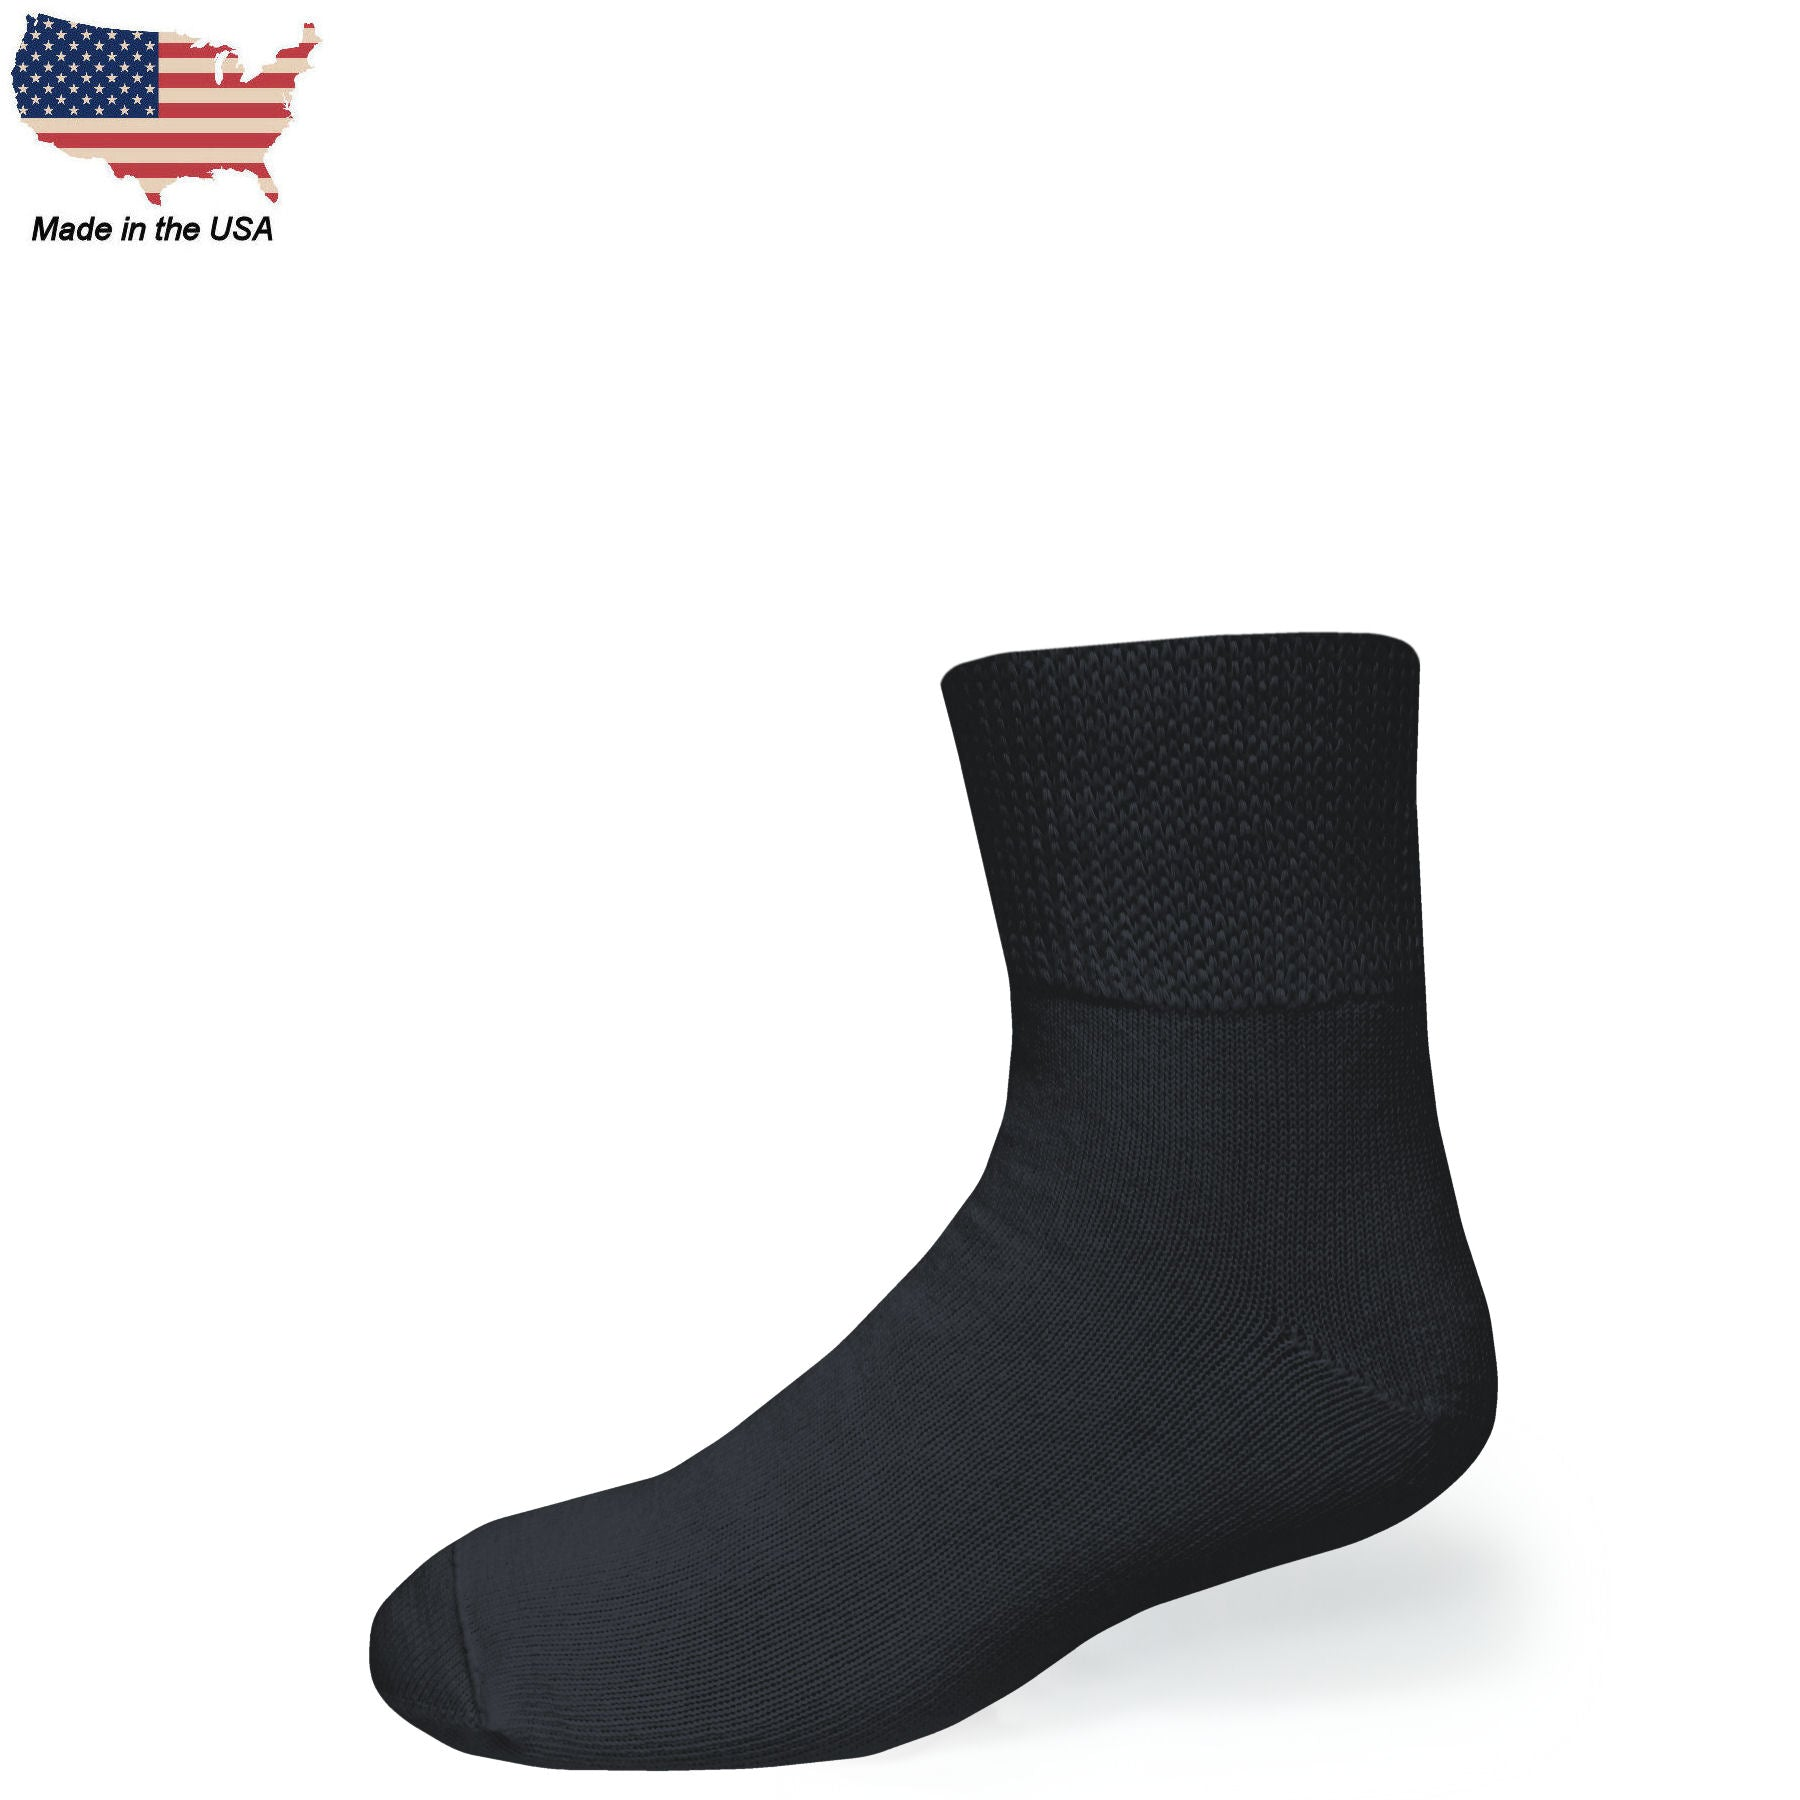 Bigger Big Foot Comfort Cotton Diabetic Black Quarter Socks